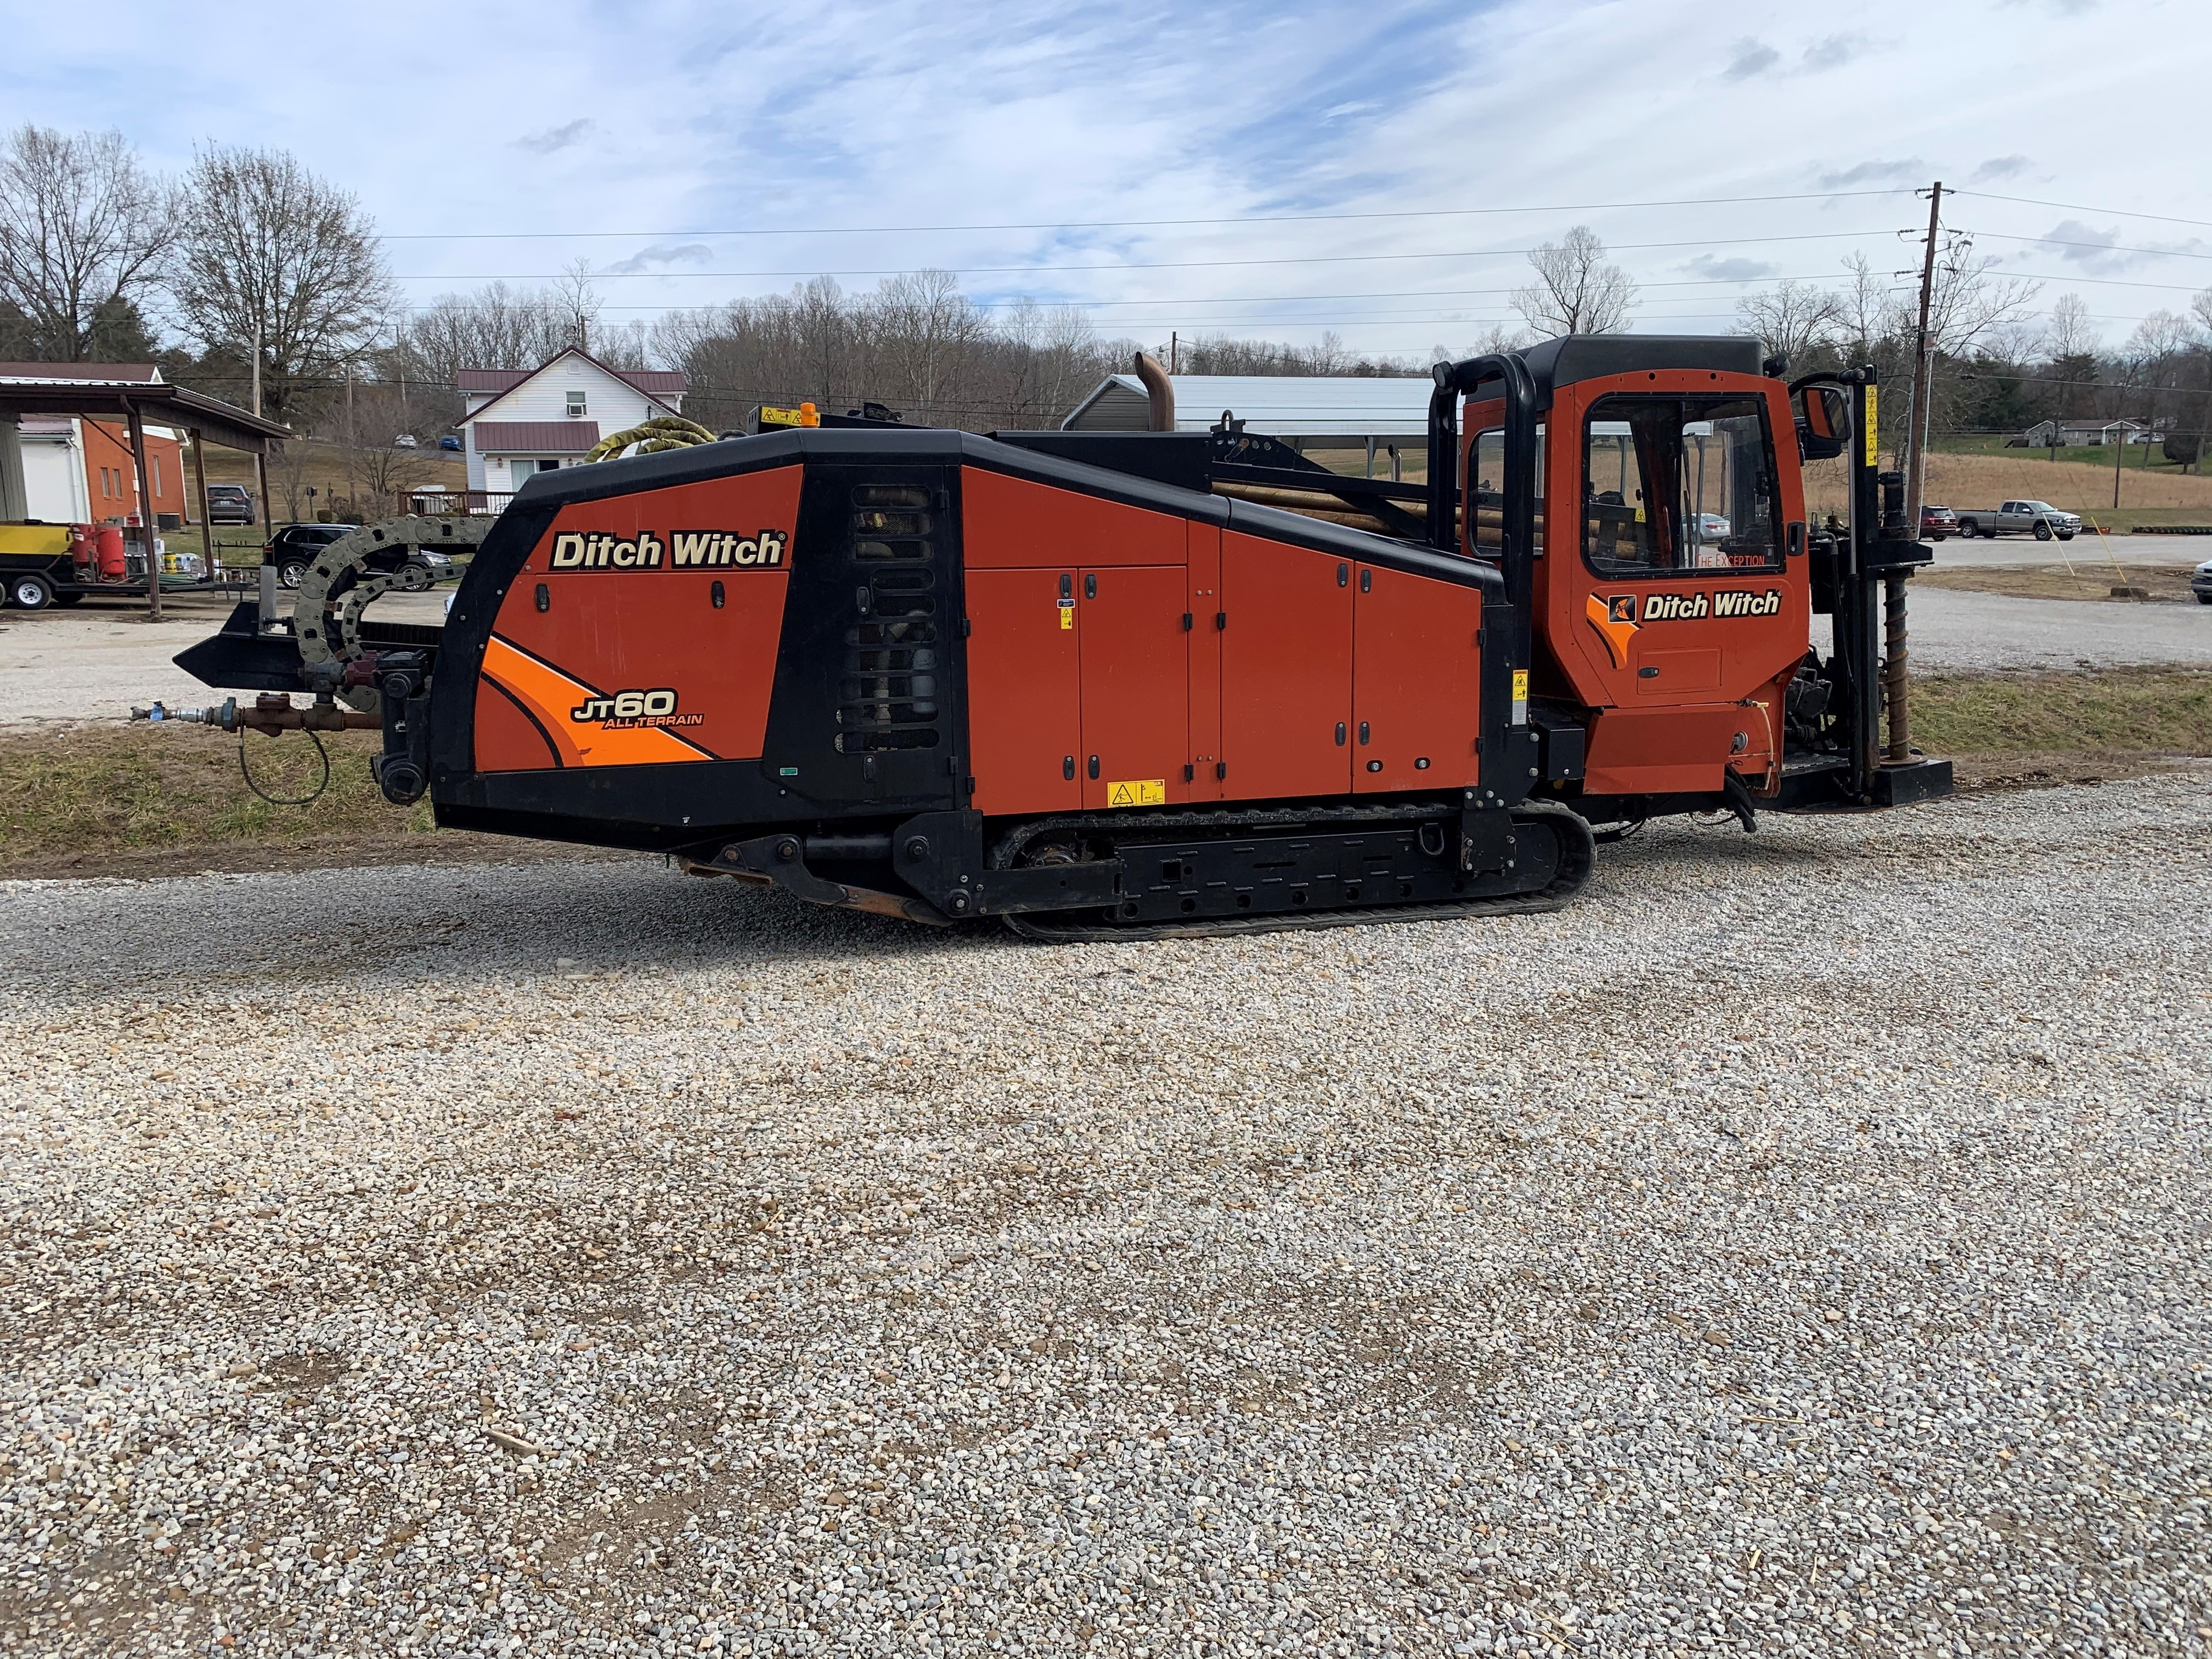 Used, 2014, Ditch Witch, JT60 All Terrain, Boring / Drilling Machines